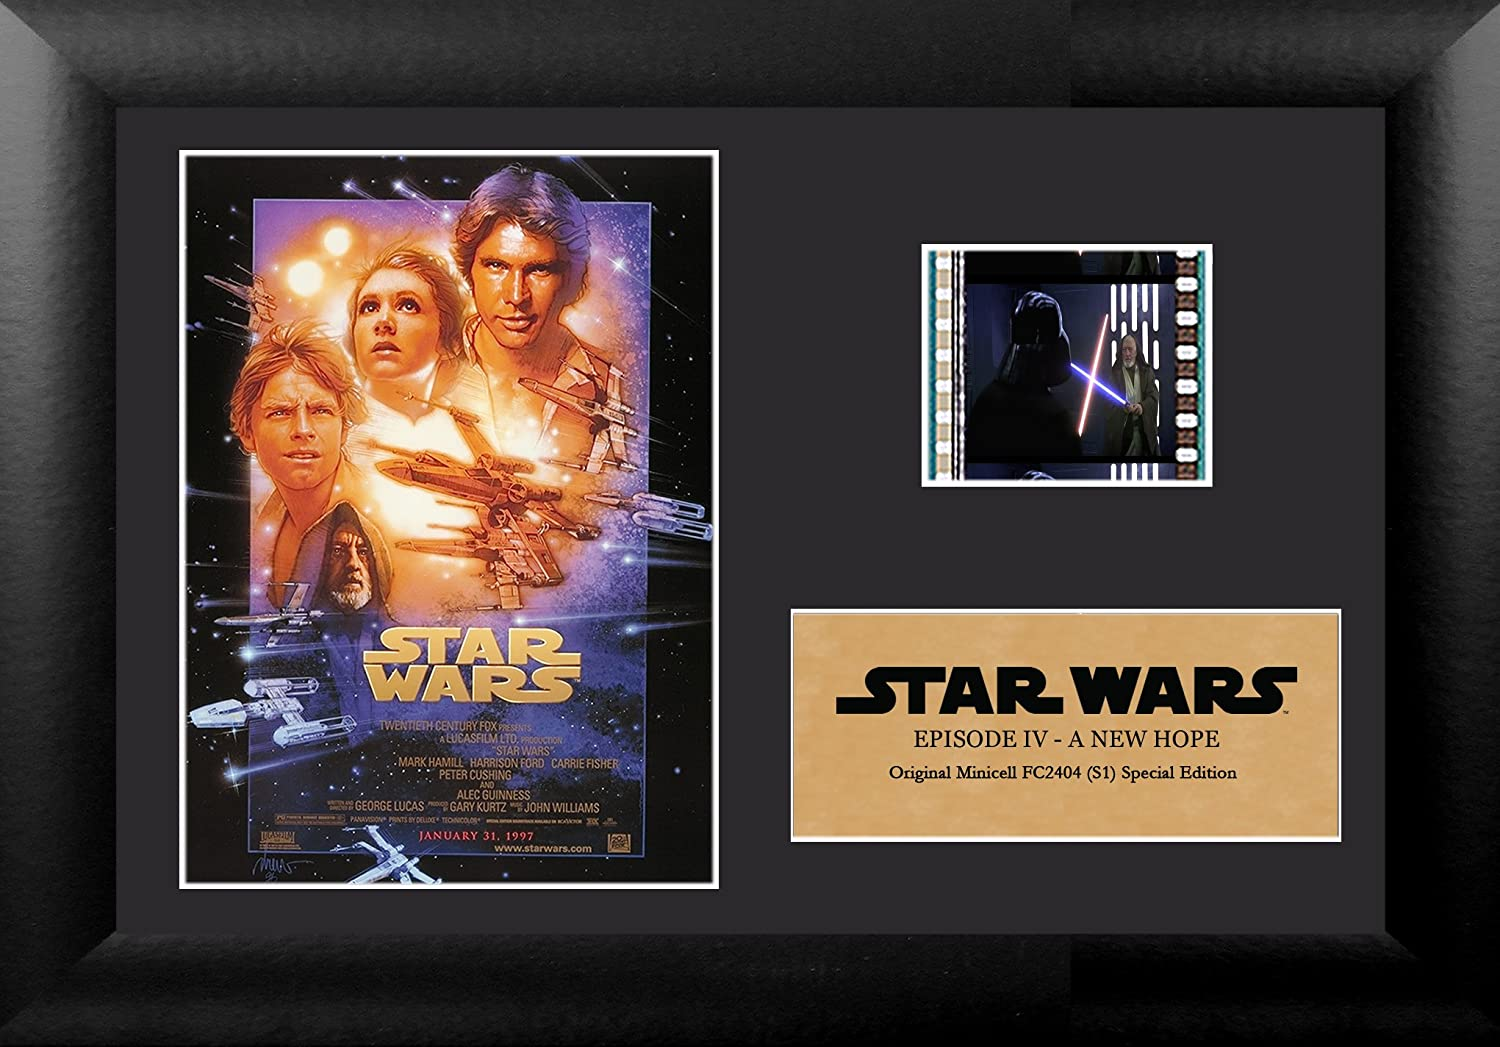 19. FilmCells Star Wars Episode IV A New Hope Authentic 35mm Film Cell Special Edition Display